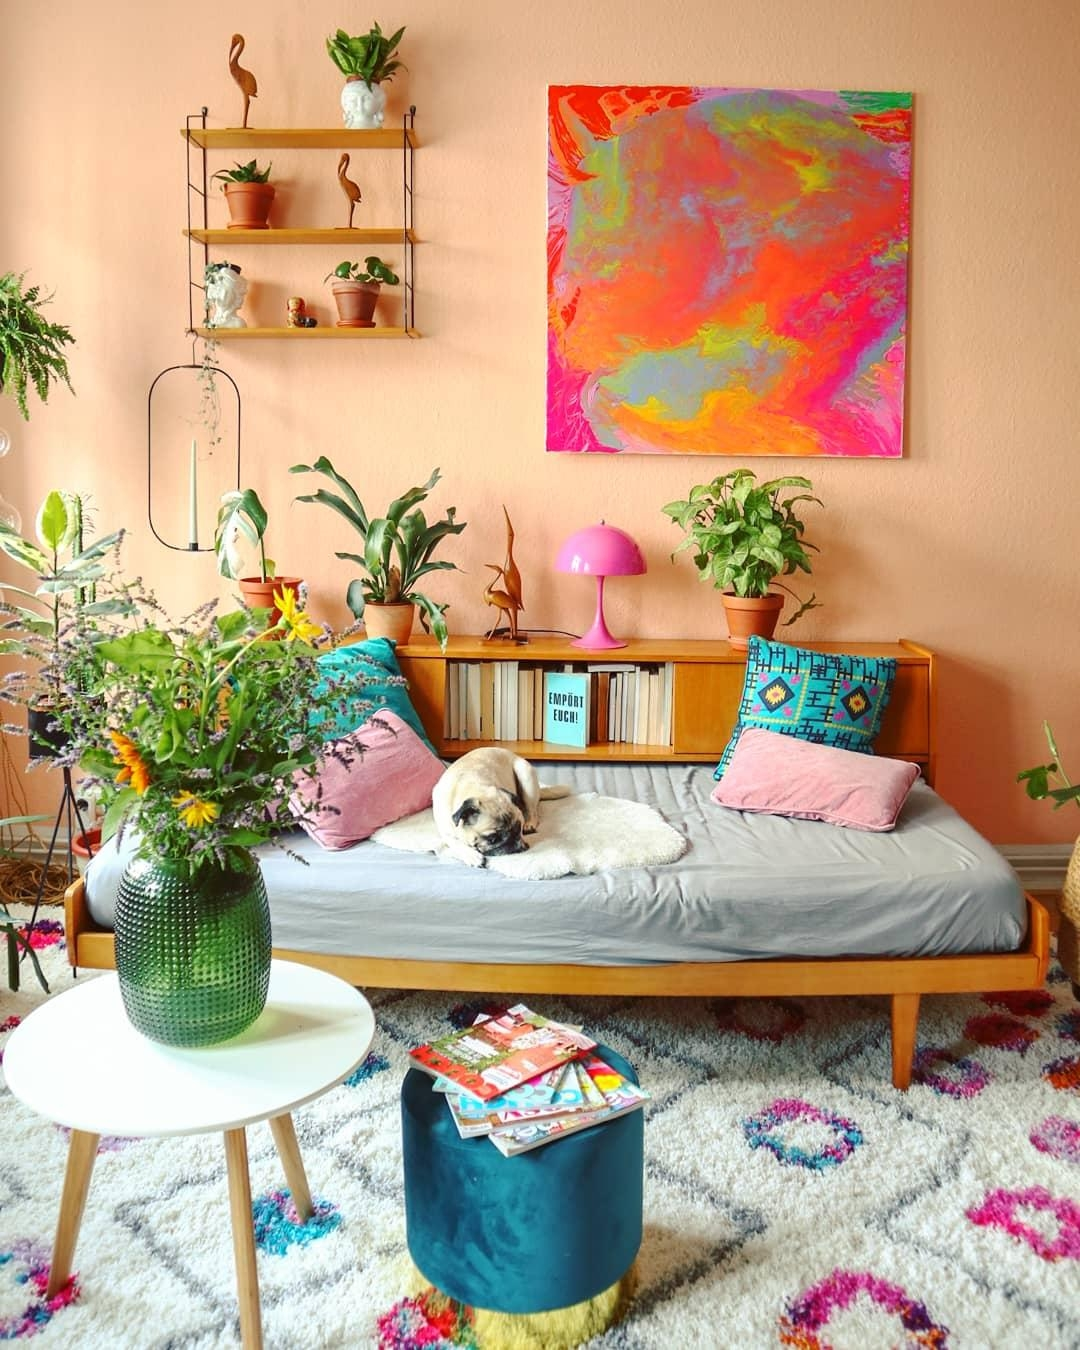 #Livingroom #colorfulhome #Bohemian #boho #daybed #plant